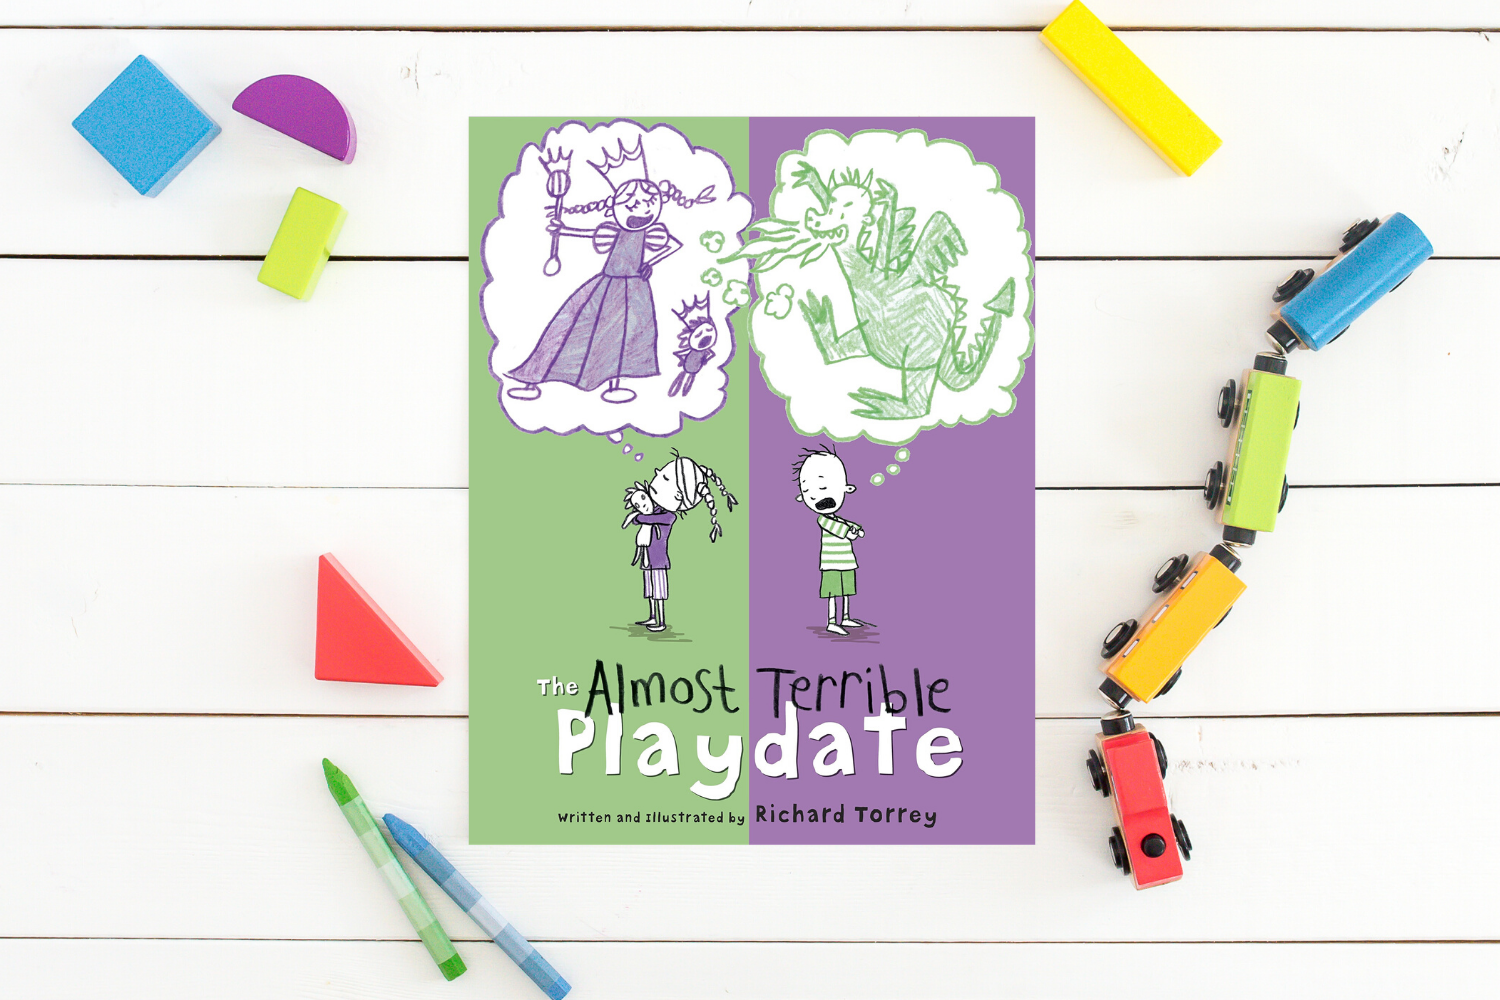 The Almost Terrible Playdate - Books from Past Boxes of Tiny Humans Read Kids Book Subscription Box